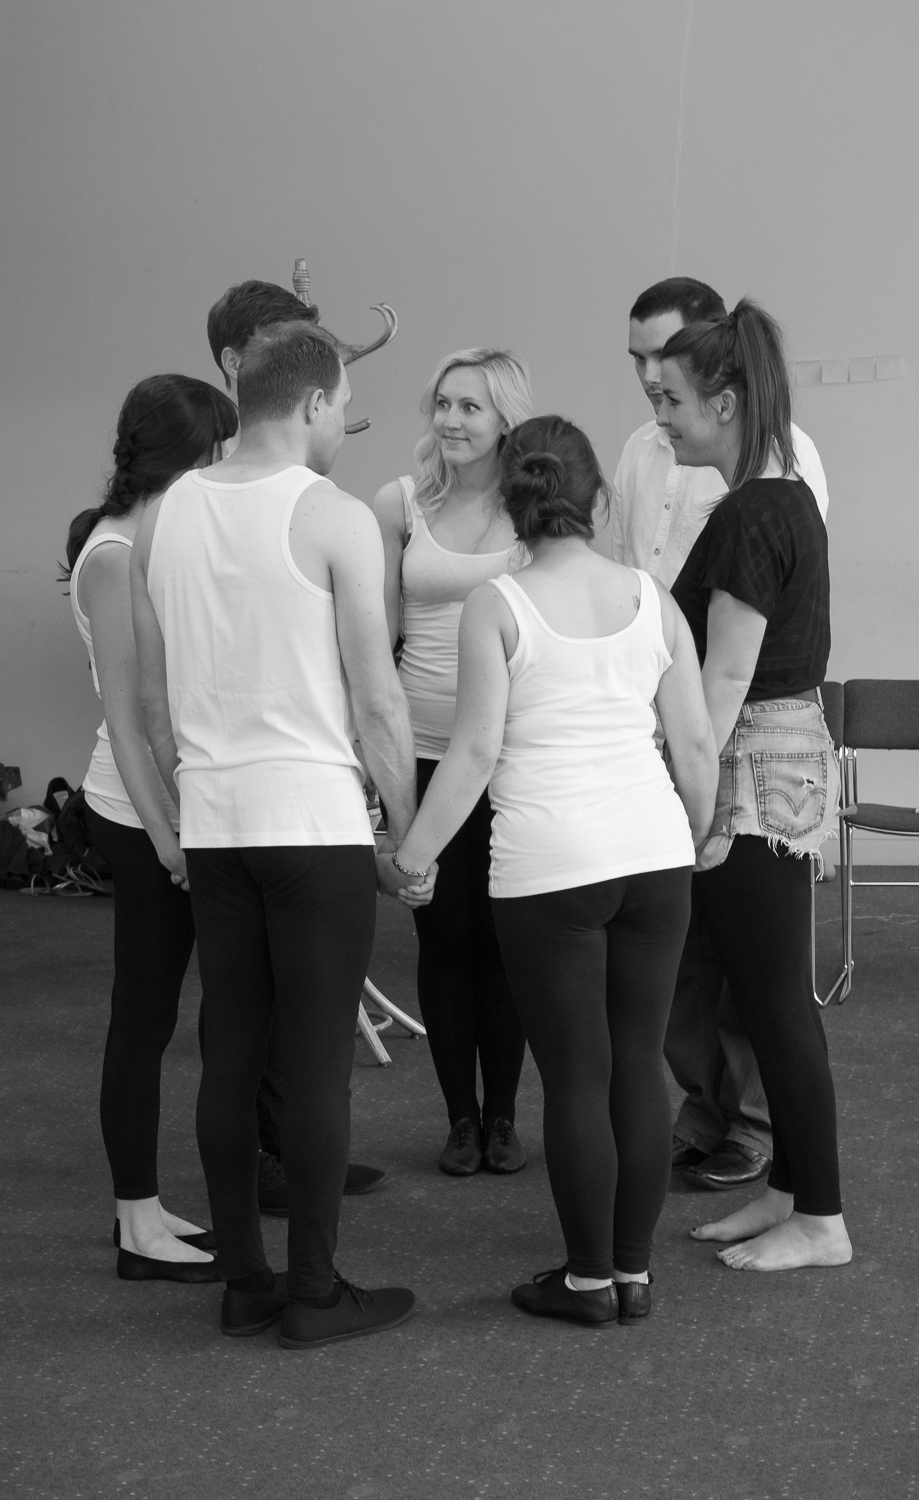 Ripped Script theatre company in rehearsals at Salisbury Playhouse in a group huddle to psych themselves up before the performance